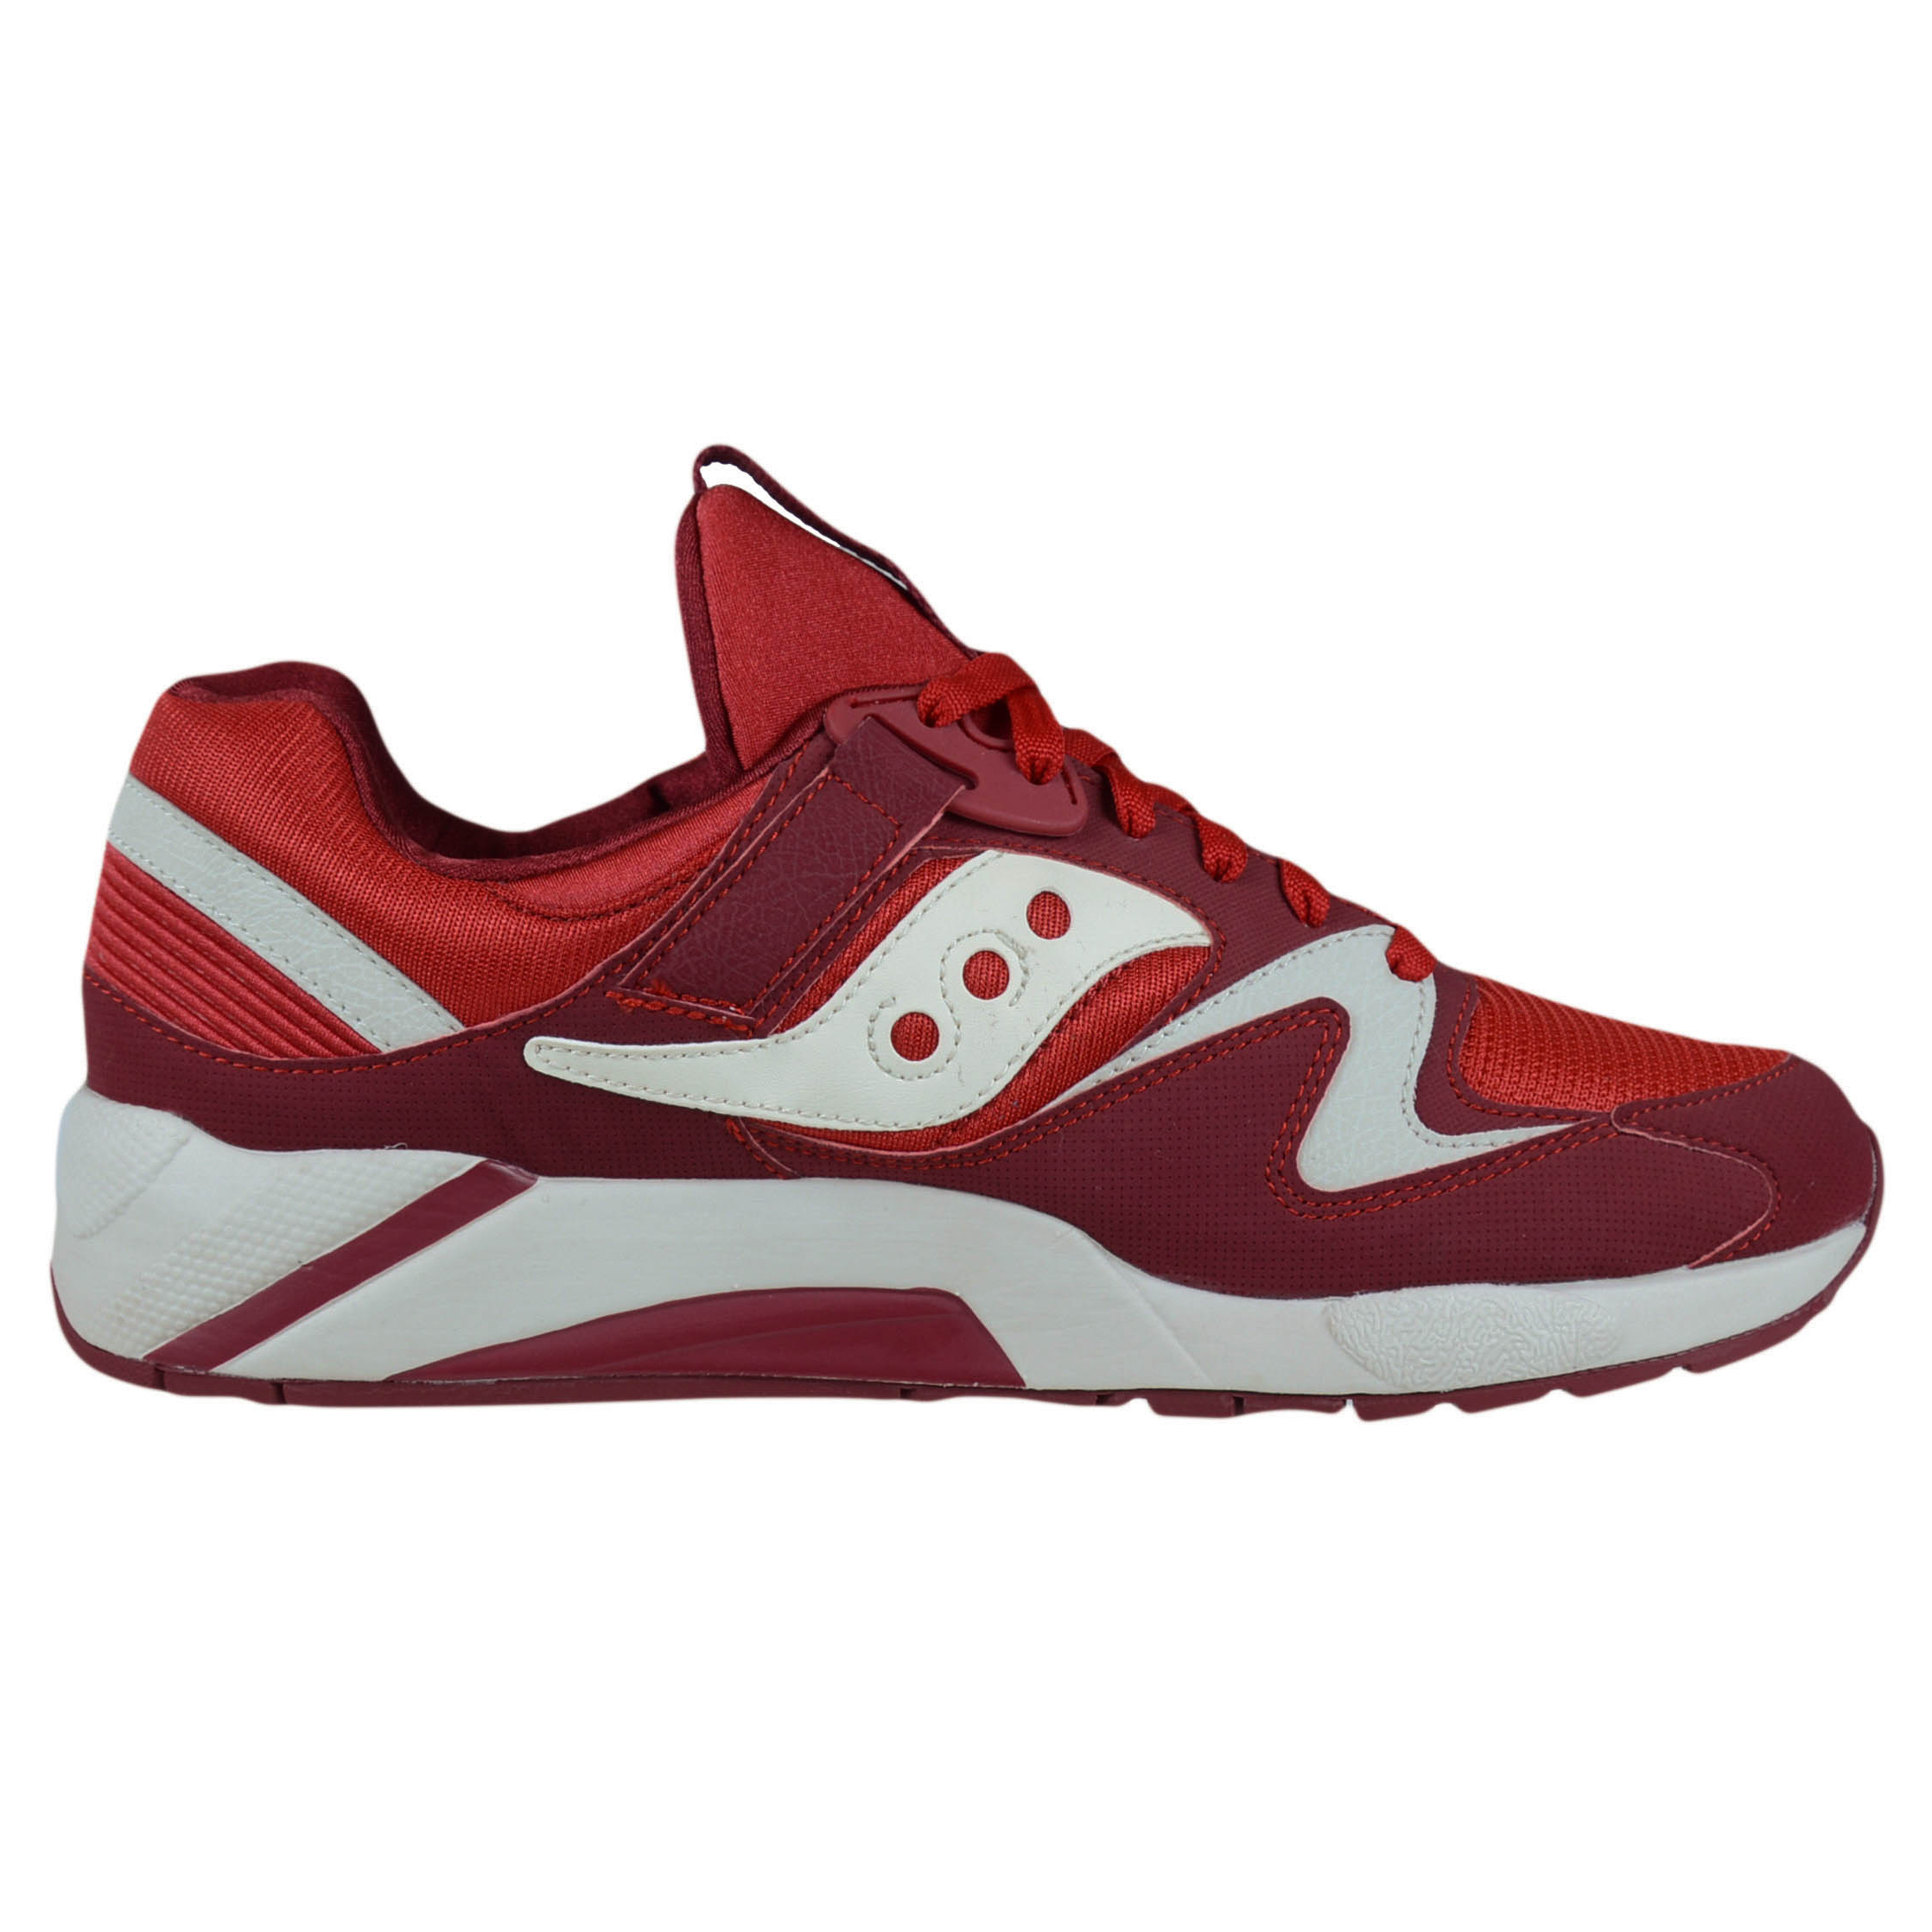 SAUCONY GRID 9000 RETRO RUNNING SHOES RED WHITE 70077-17